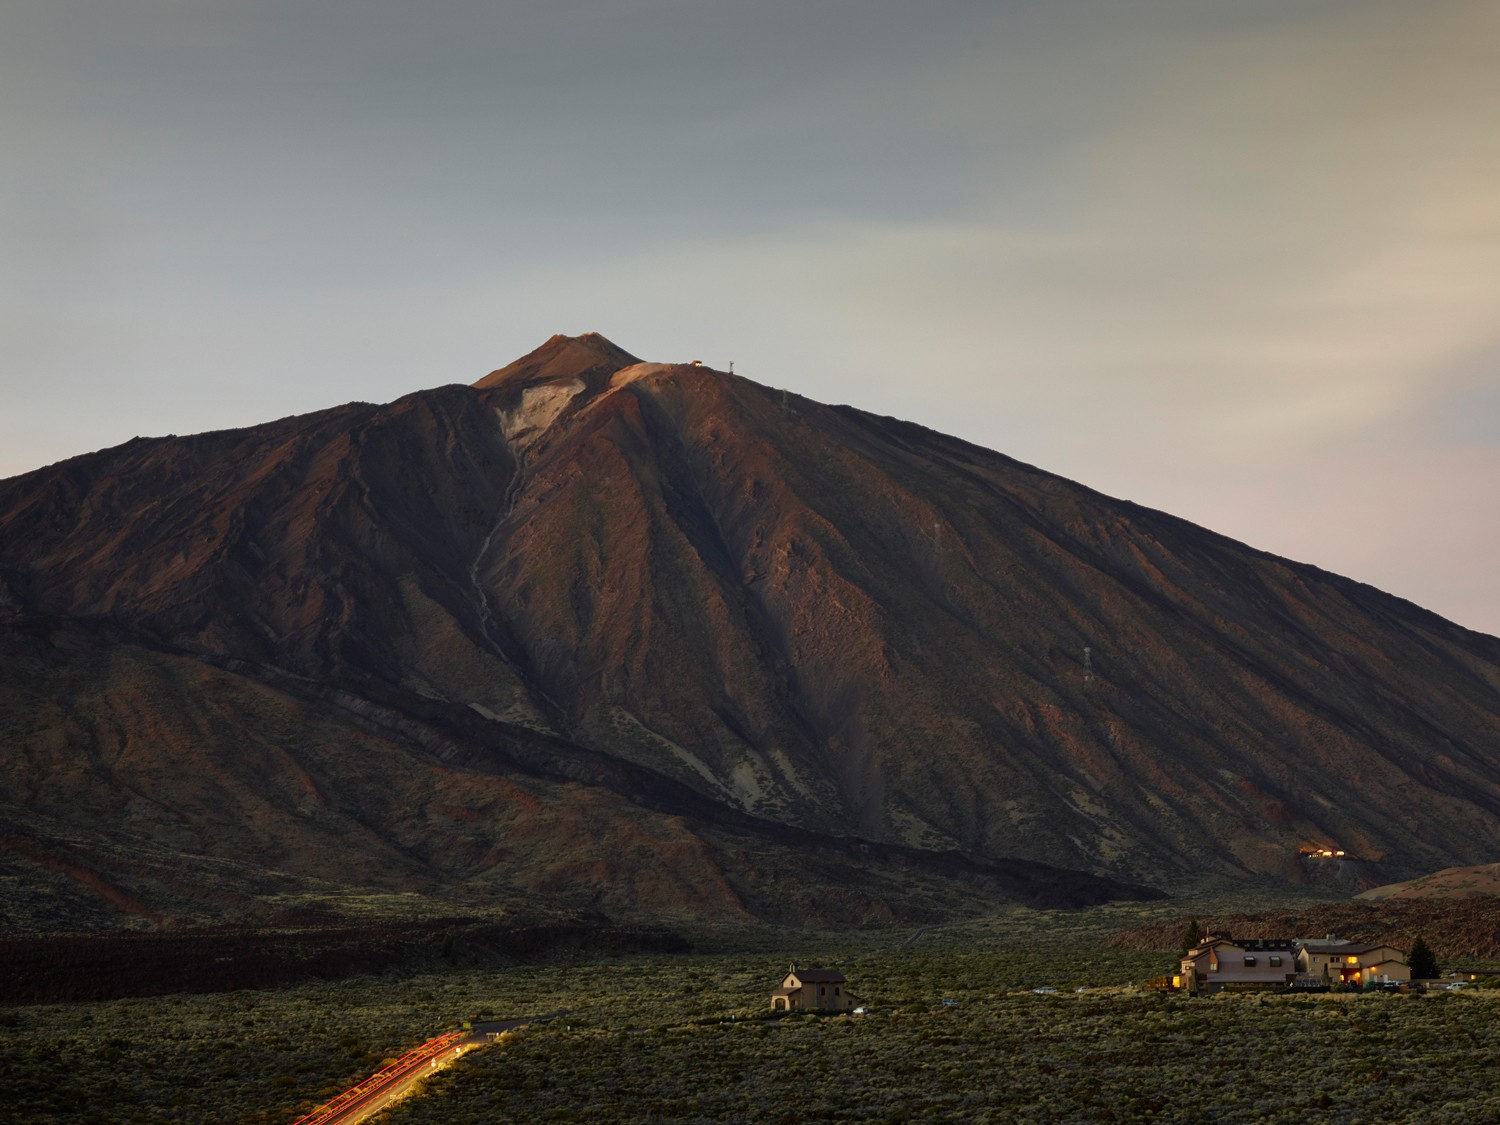 Teide is an enormous, active volcano in the Canary Islands